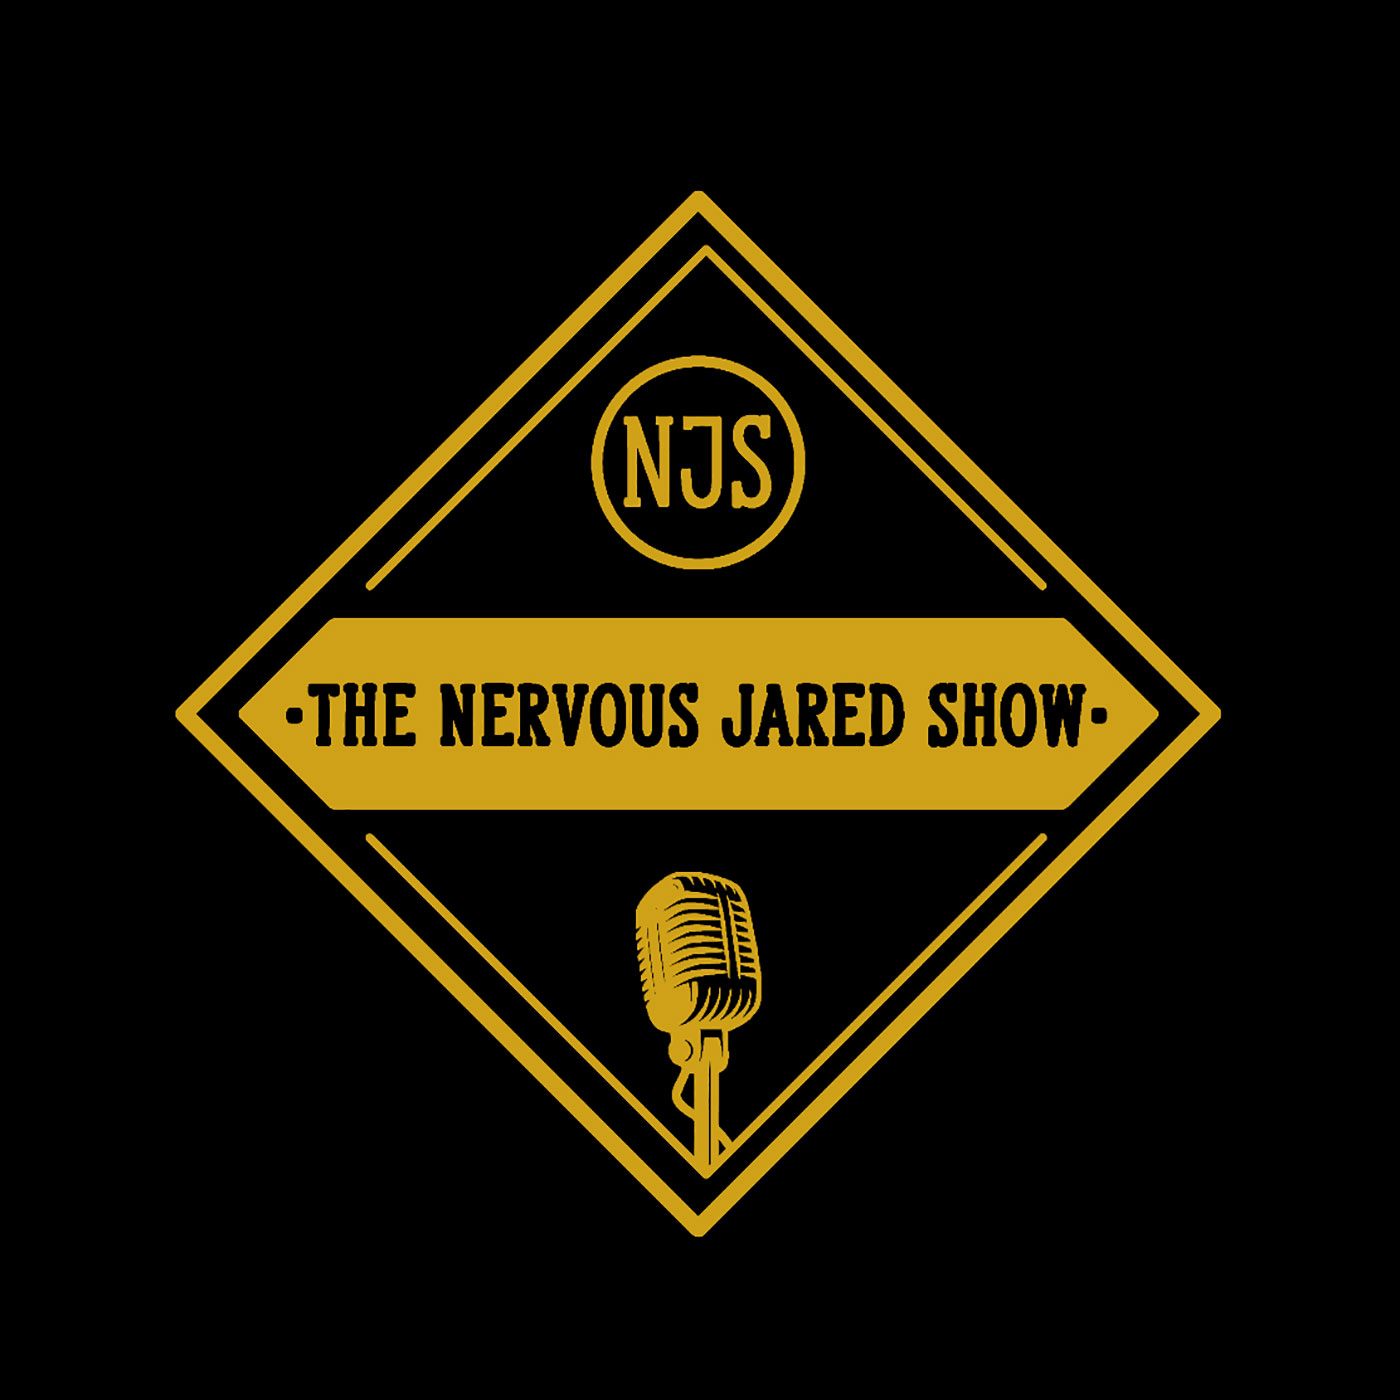 The Nervous Jared Show